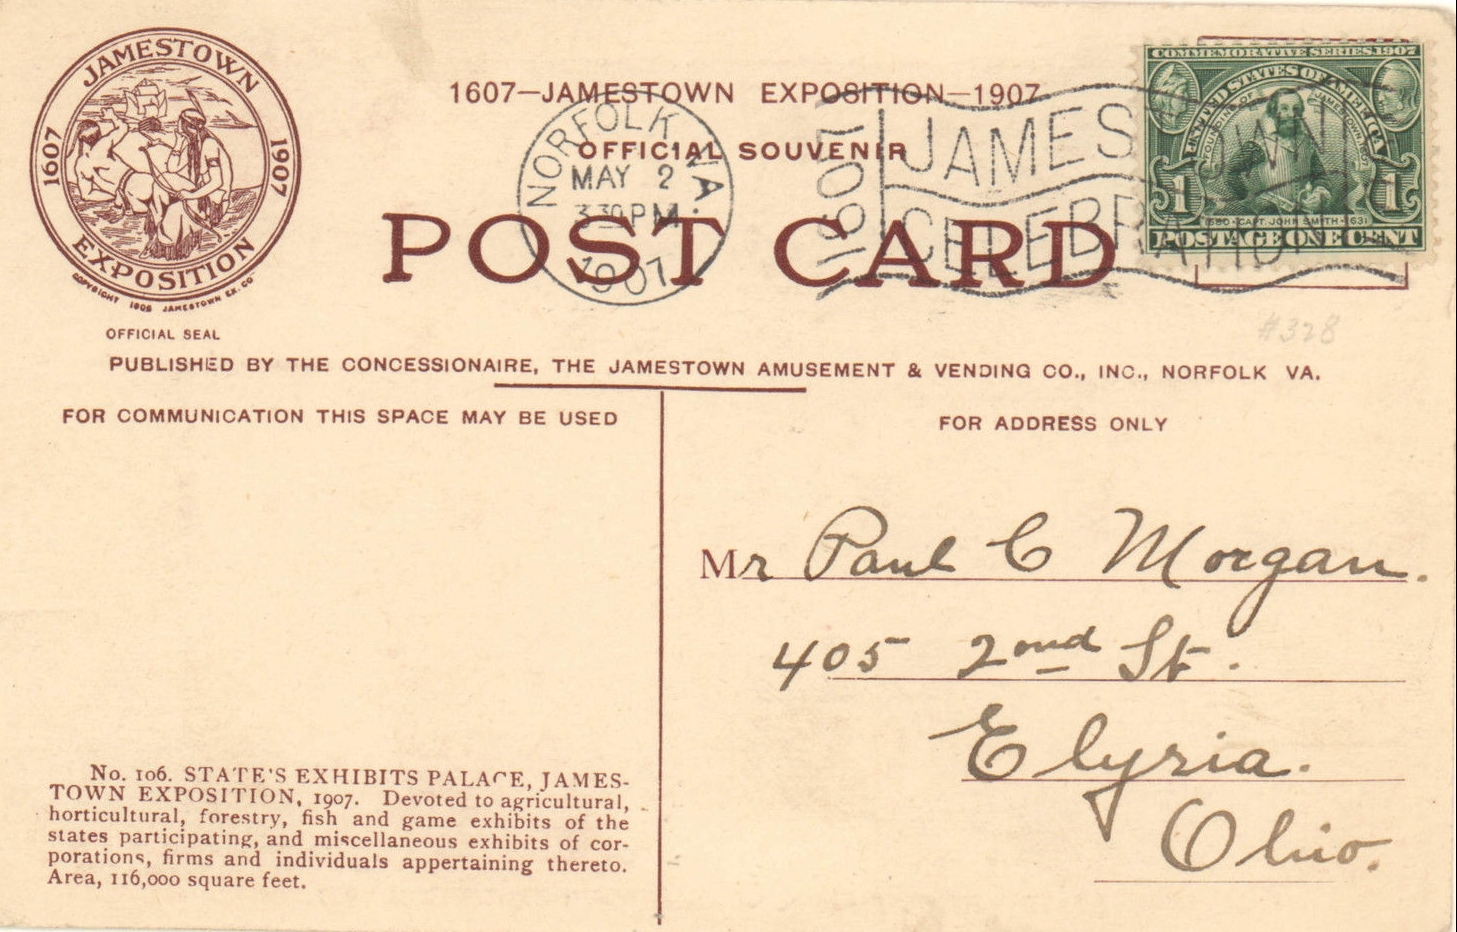 Postcard mailed from Norfolk, Virginia, one week following the opening of the 1907 Jamestown Exposition with